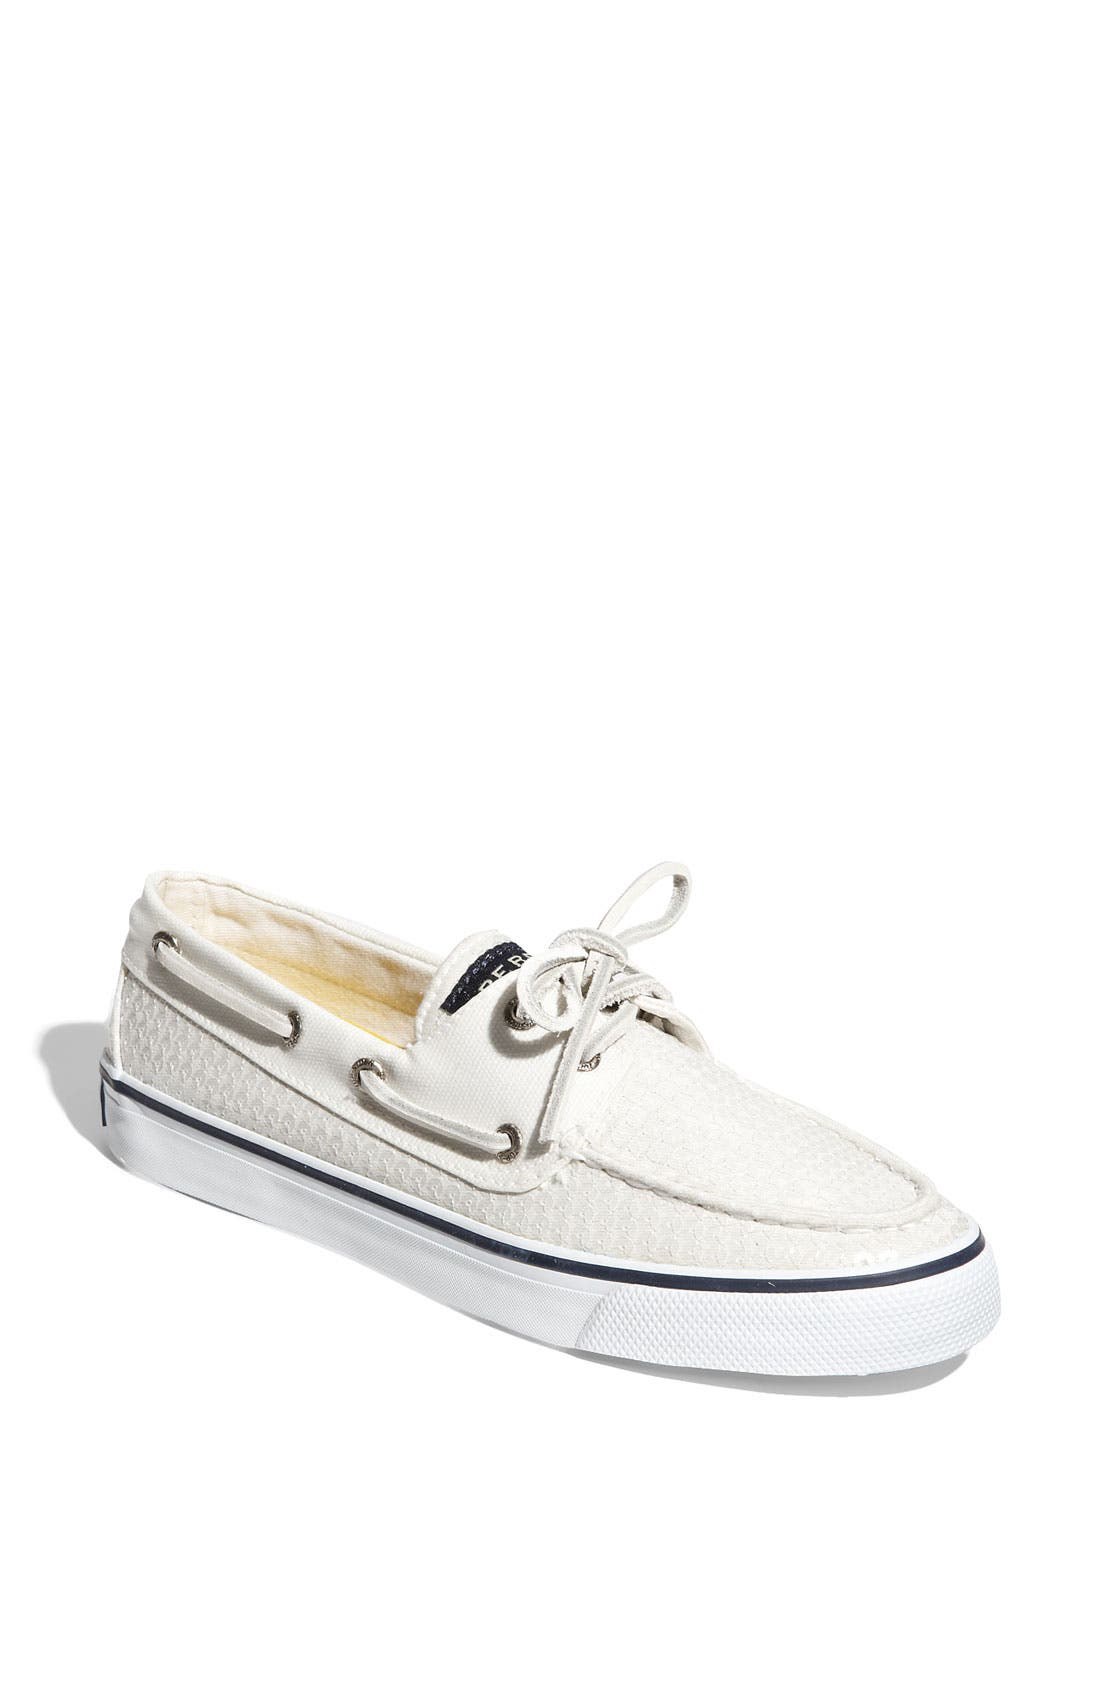 Top-Sider<sup>®</sup> 'Bahama' Sequined Boat Shoe,                             Main thumbnail 14, color,